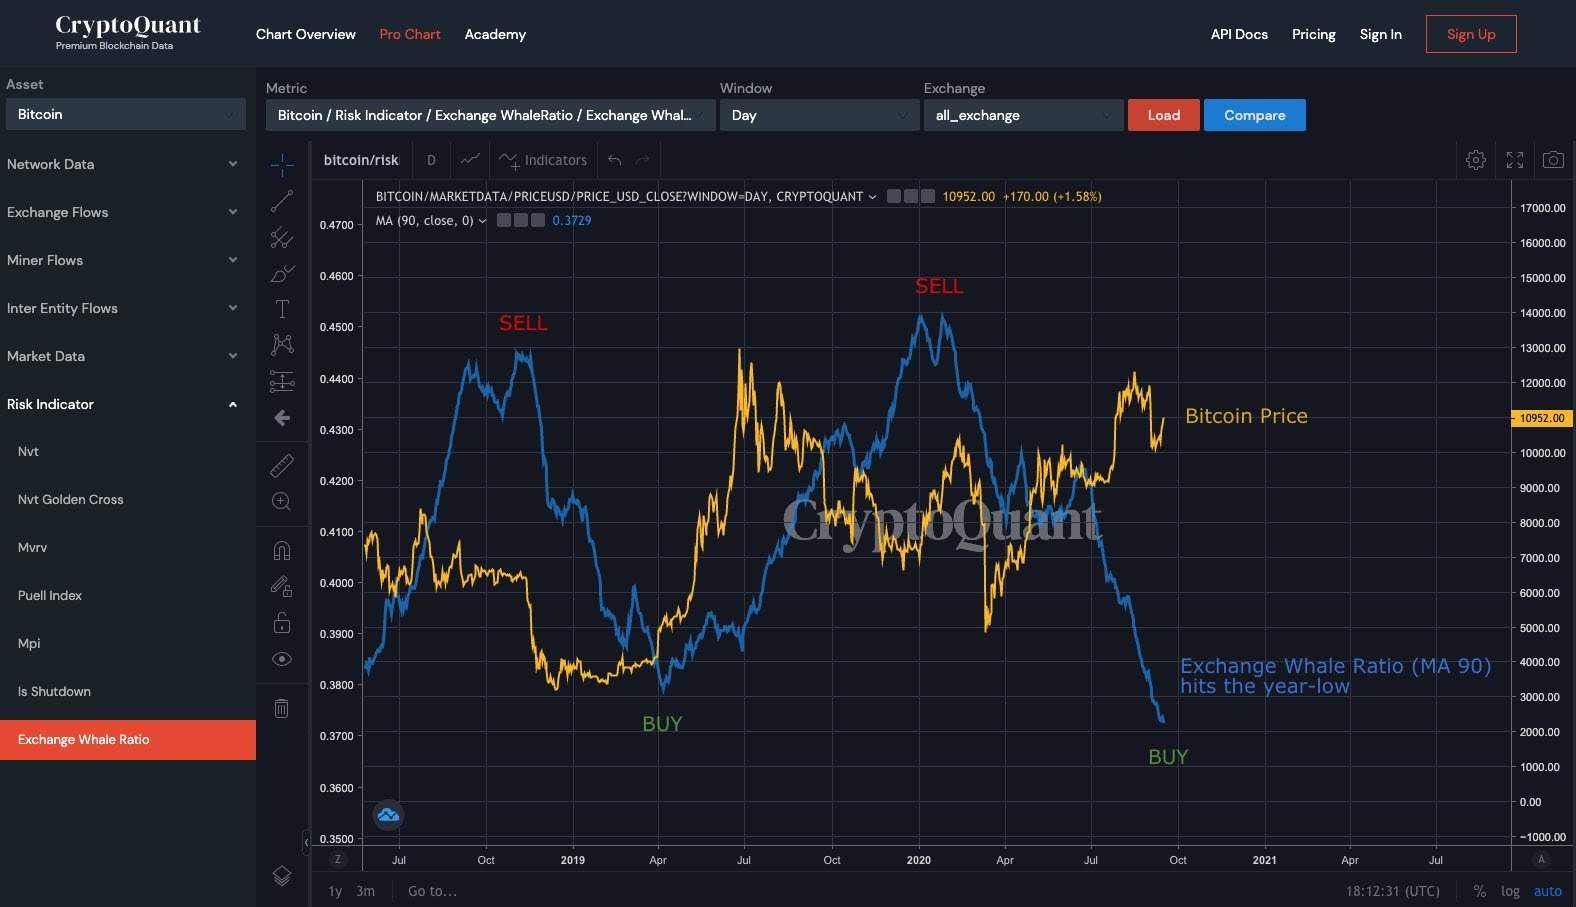 Bitcoin whale activity on exchanges. Source: CryptoQuant